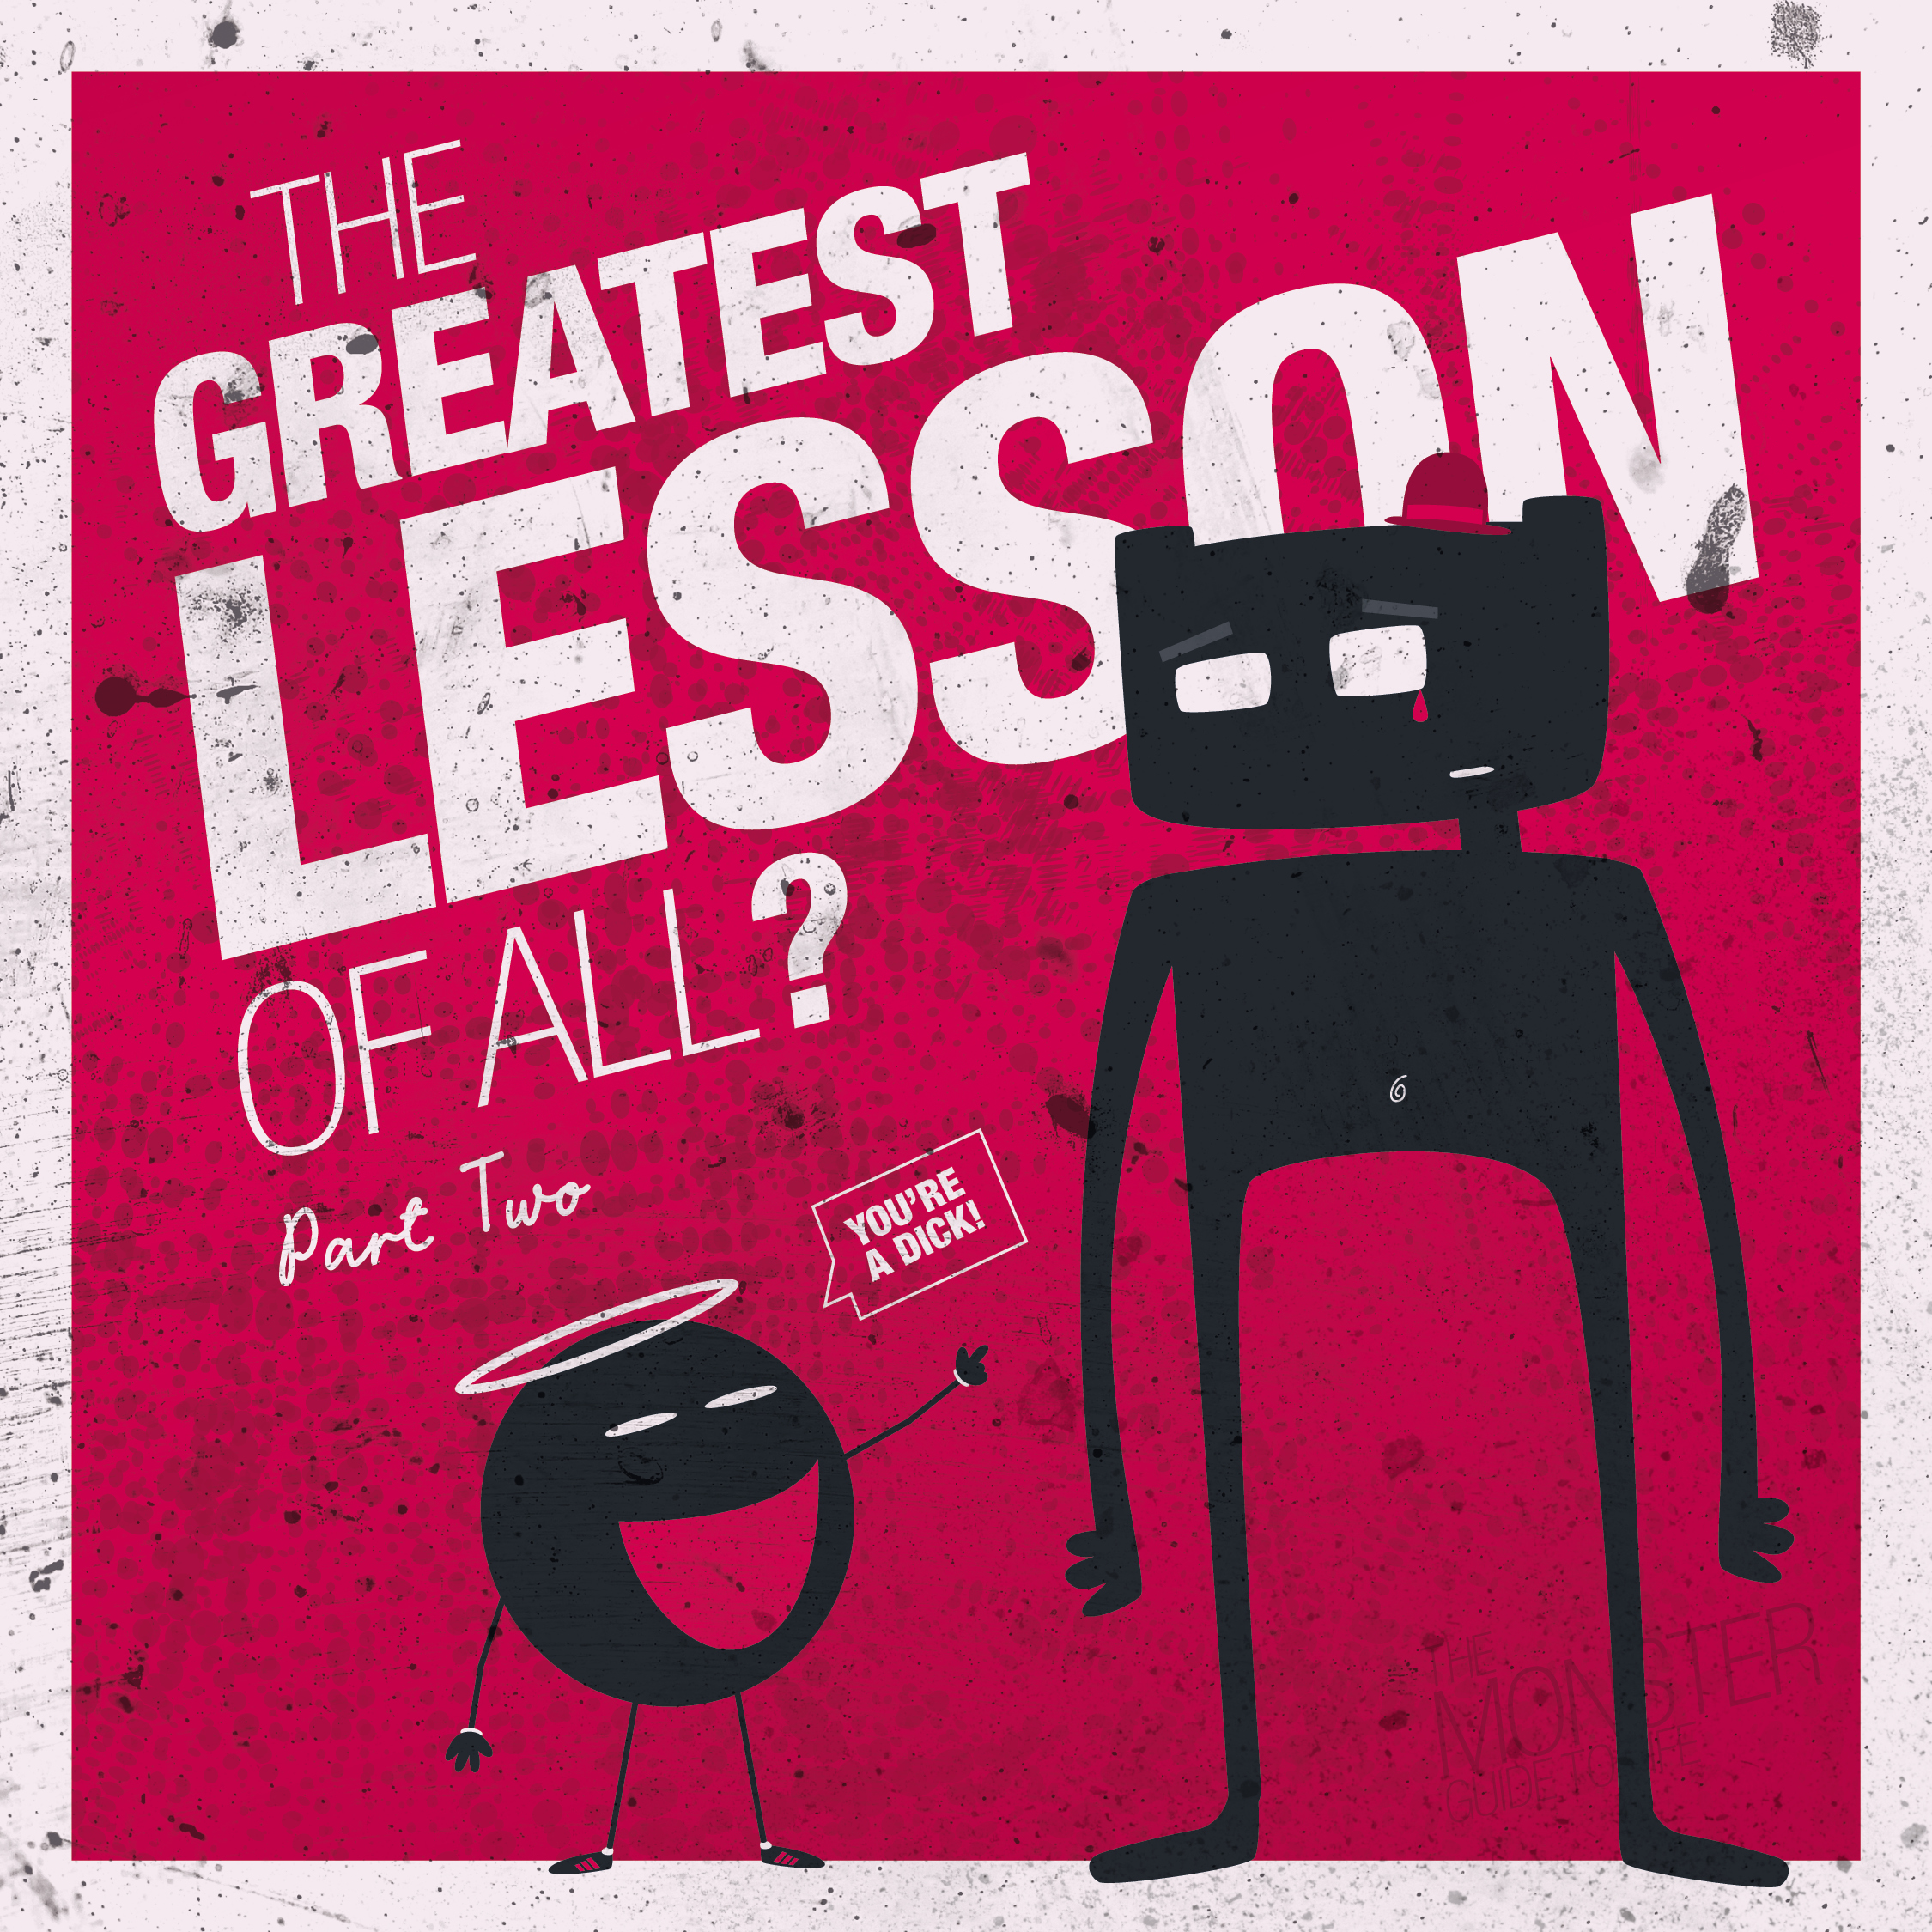 The Greatest Lesson Of All? Part Two